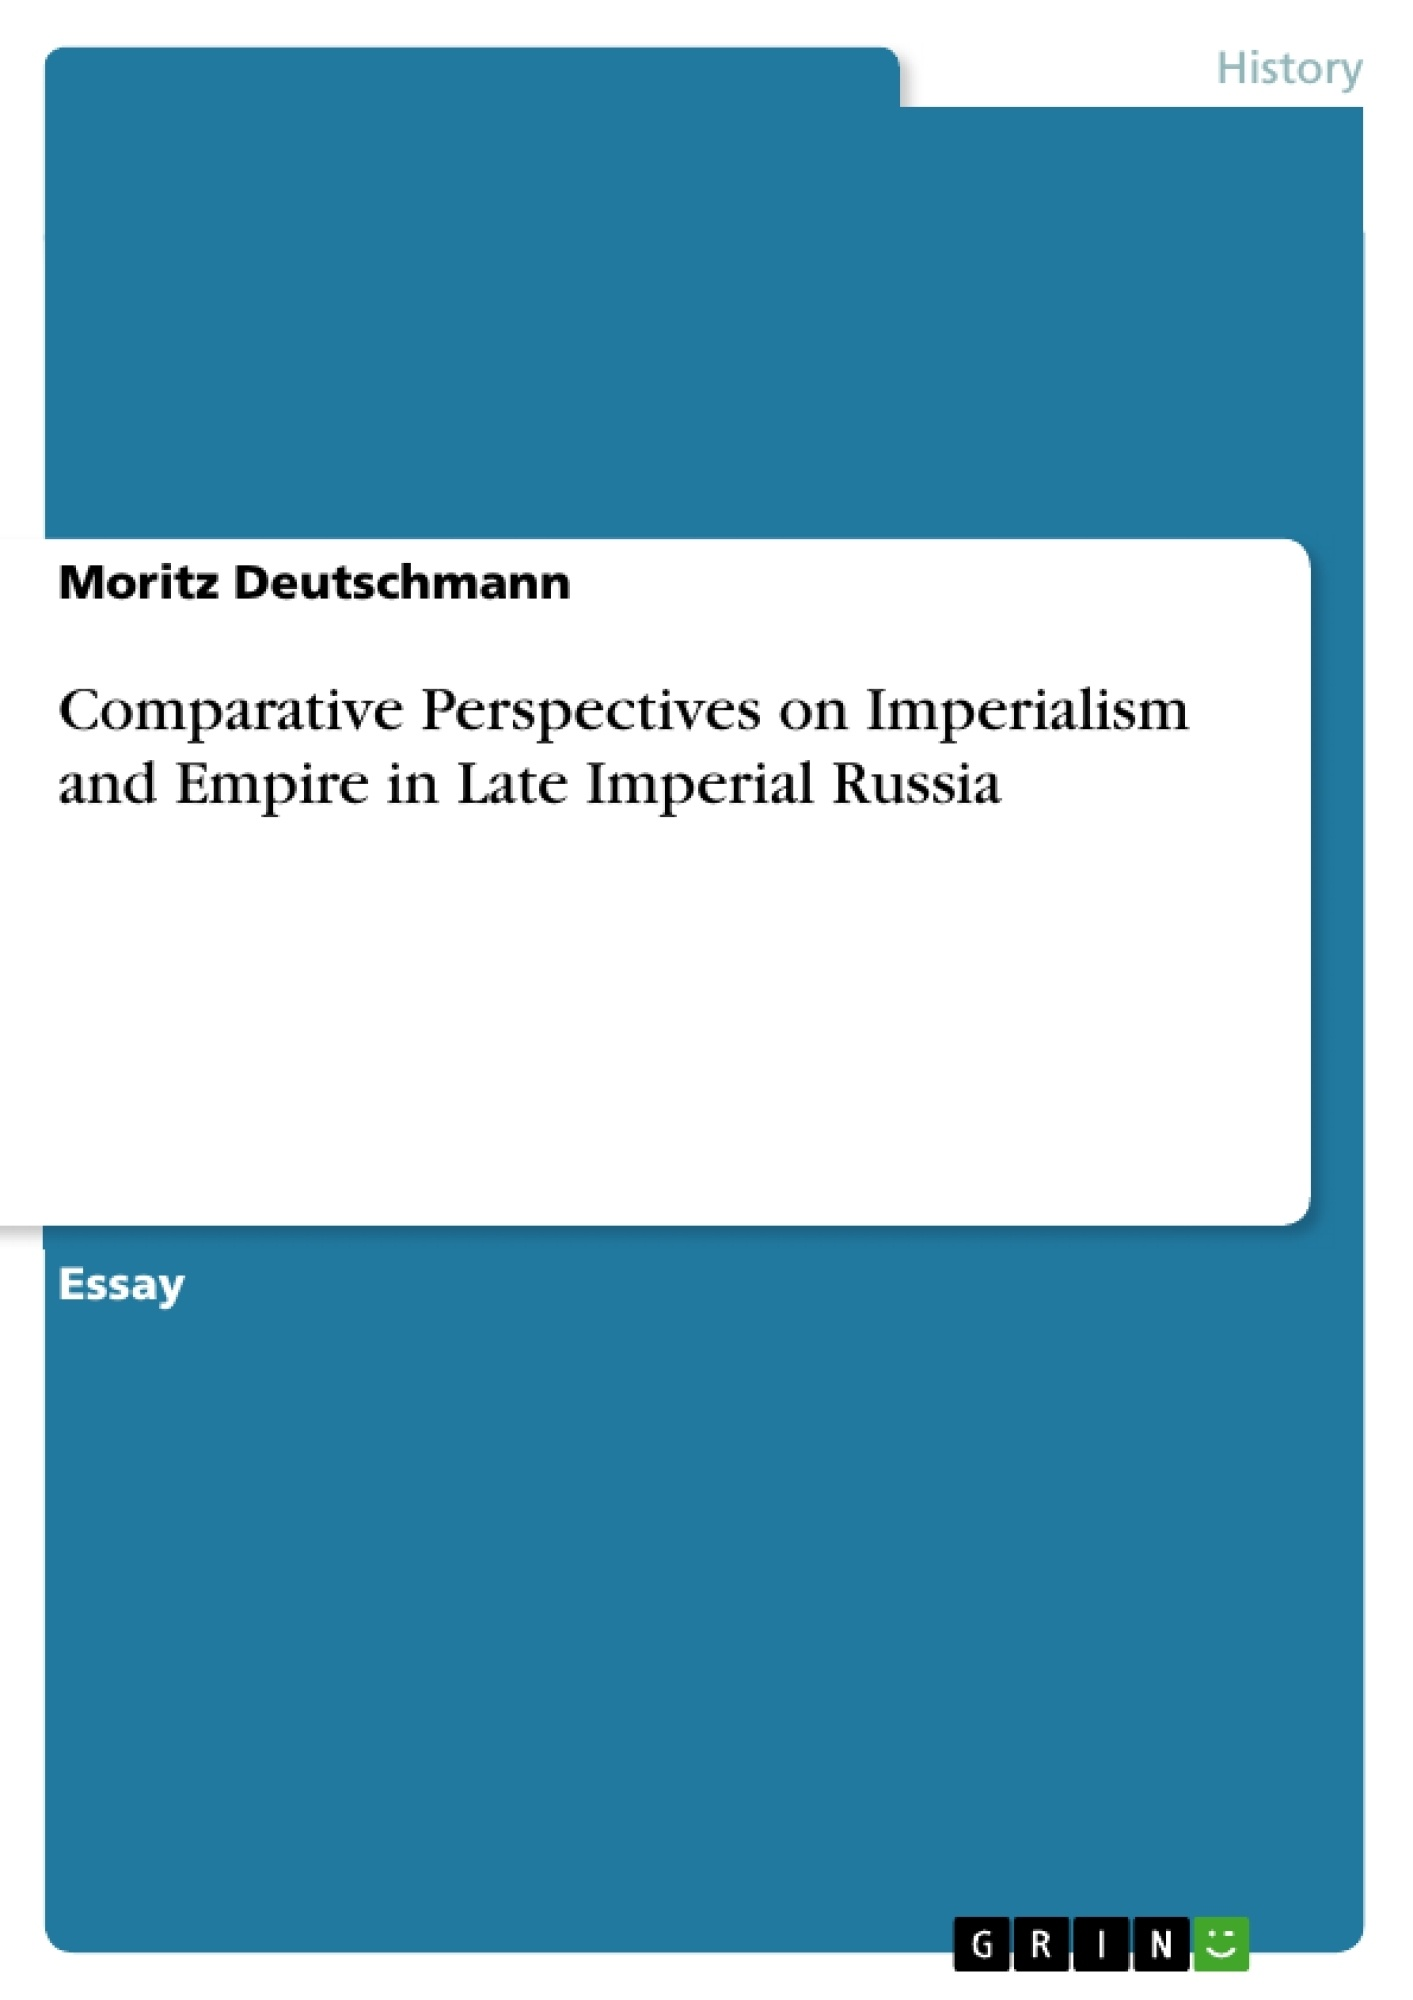 Title: Comparative Perspectives on Imperialism and Empire in Late Imperial Russia